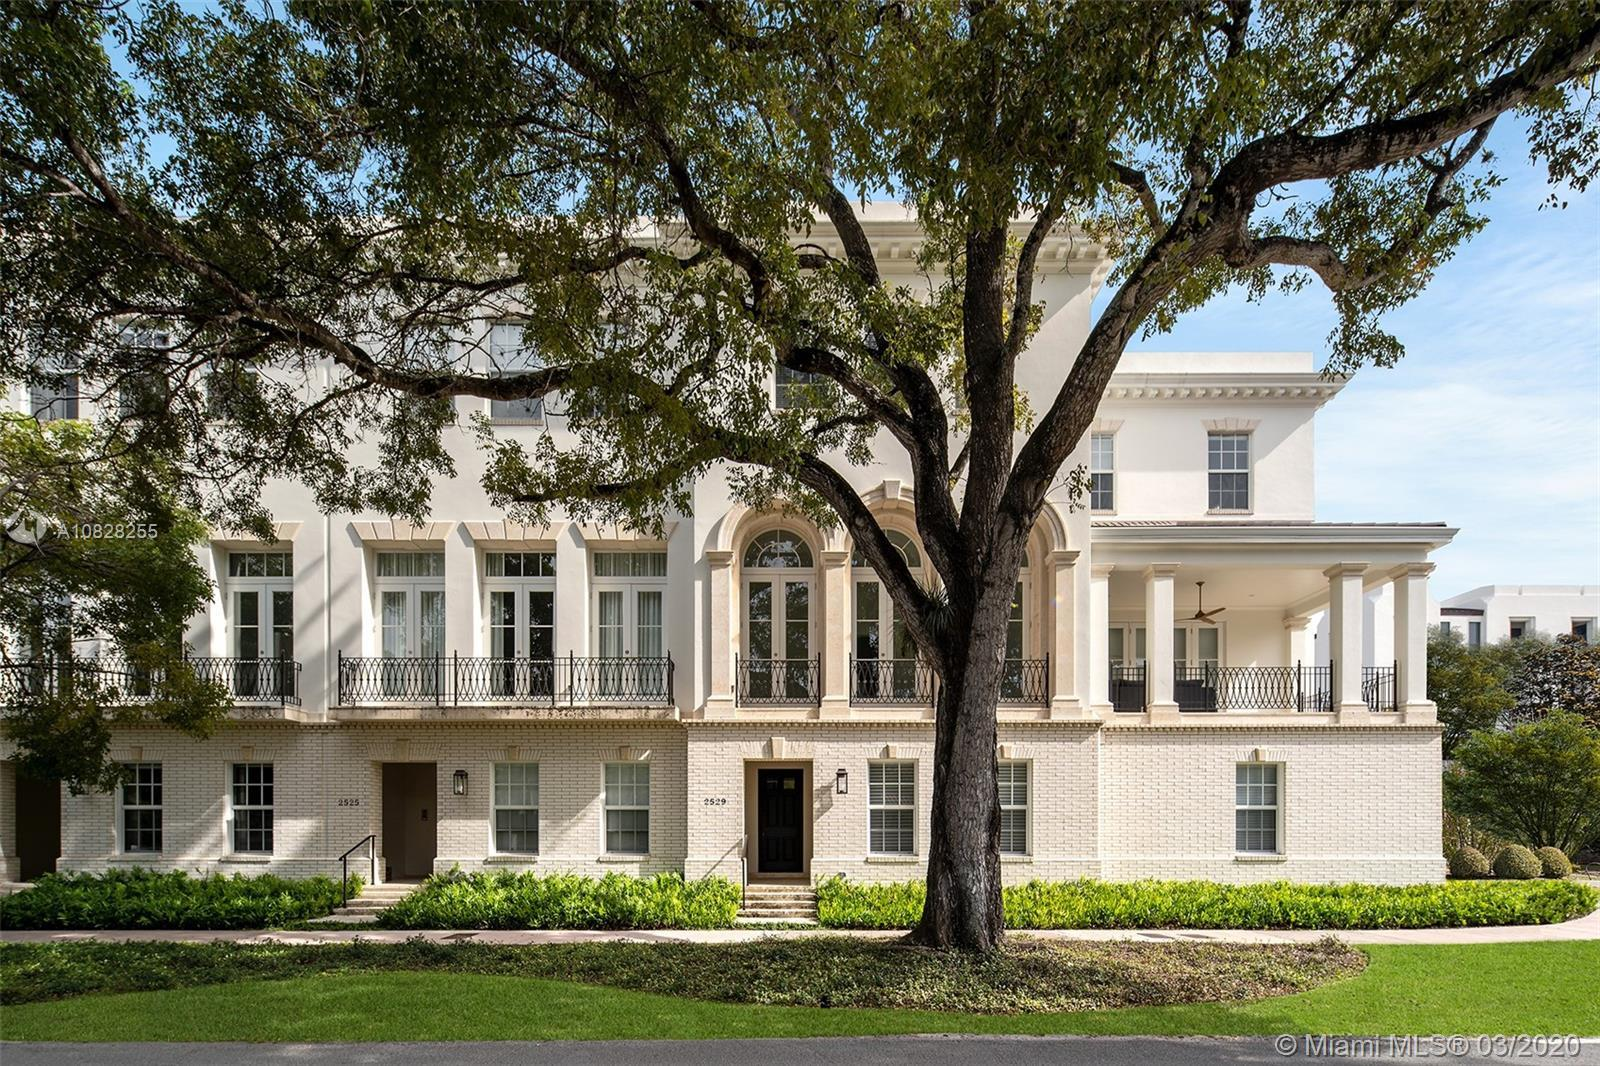 Luxurious Tri-Level Townhome in Prestigious Biltmore Square. Experience an Architectural Marvel 4 be